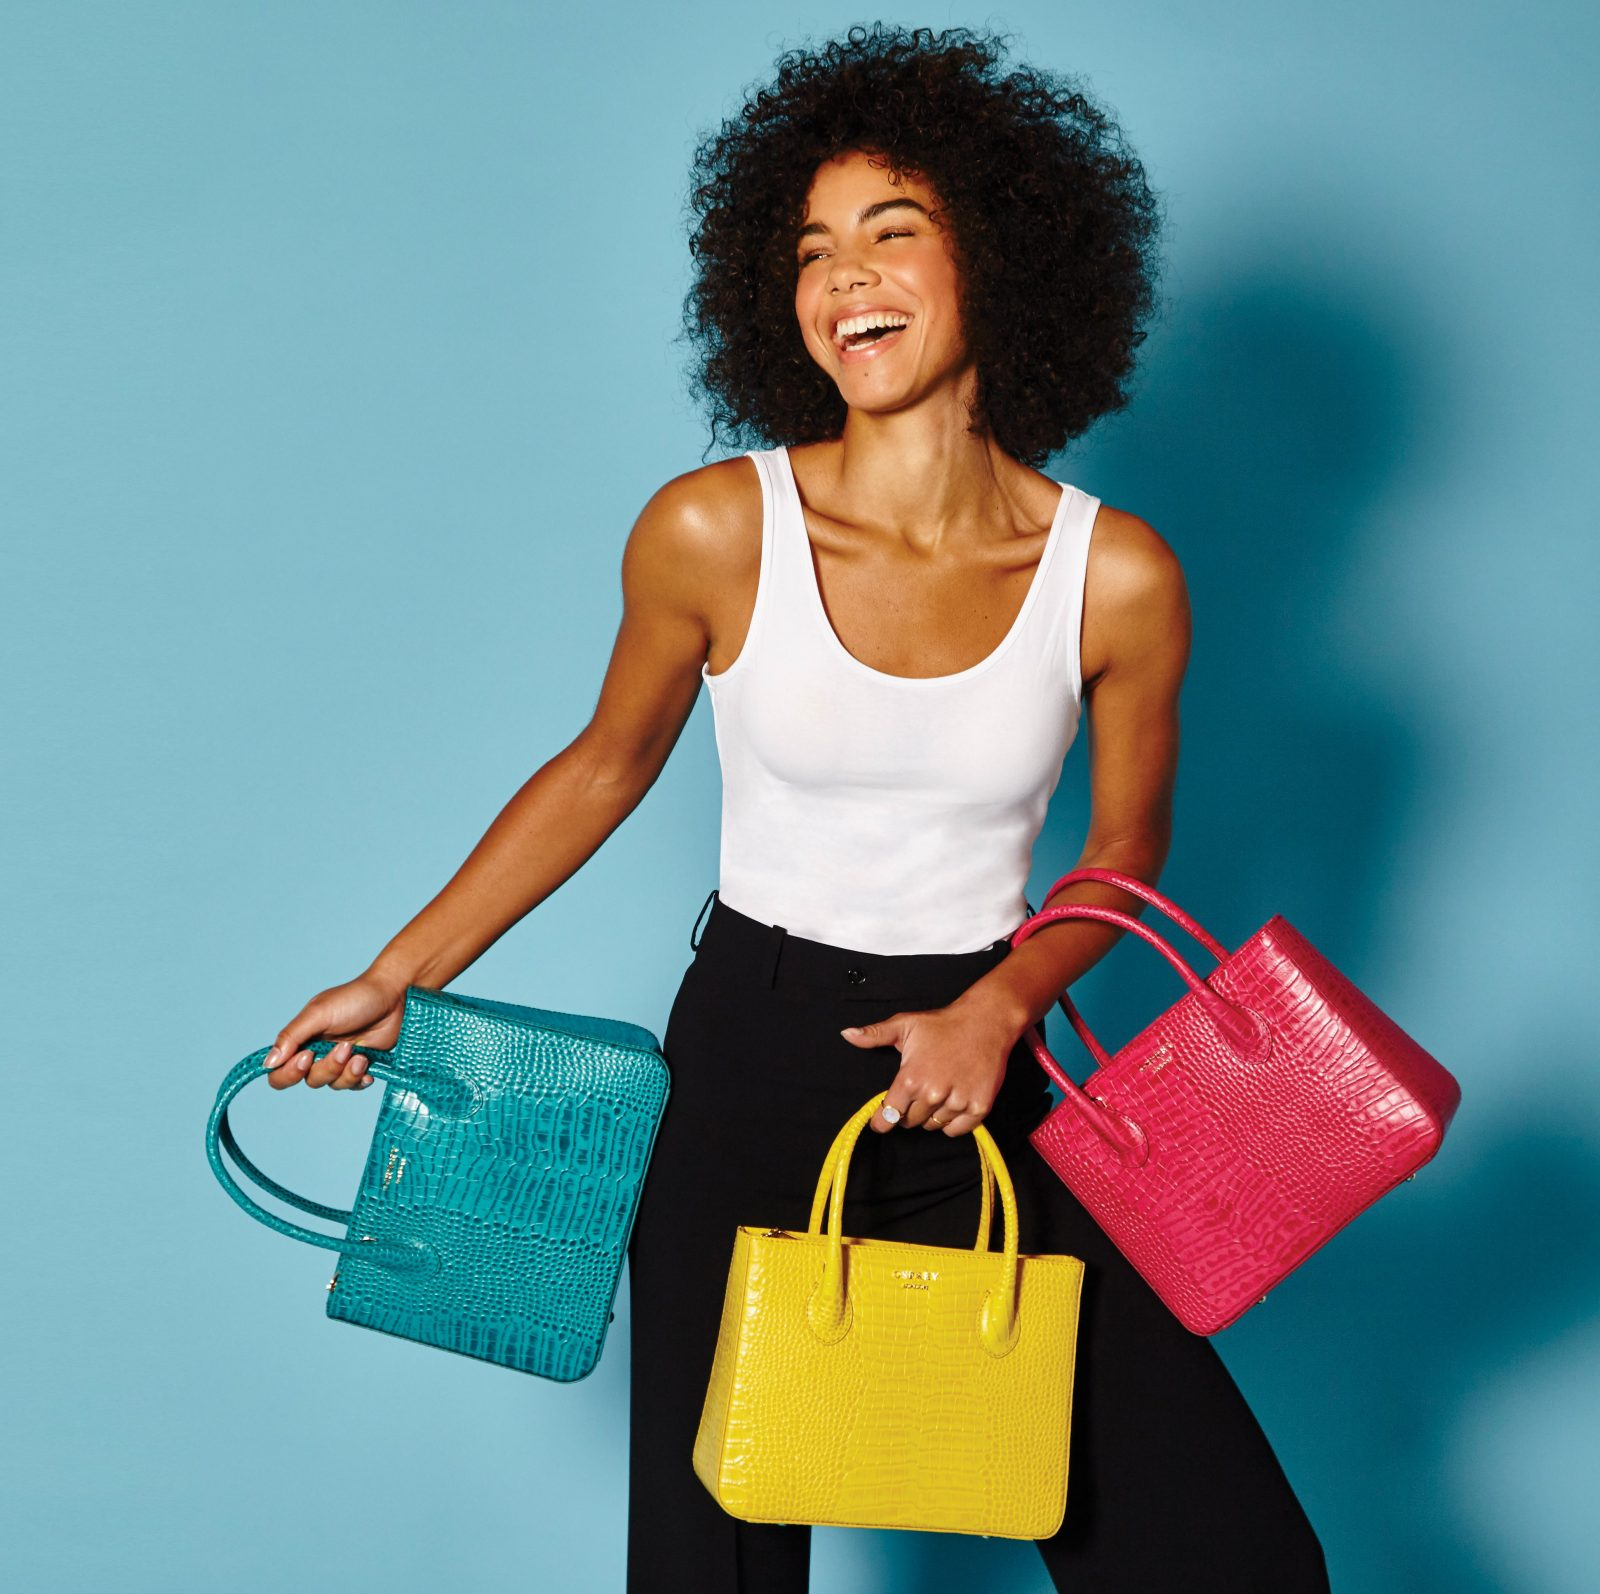 Win Your Favourite Bag